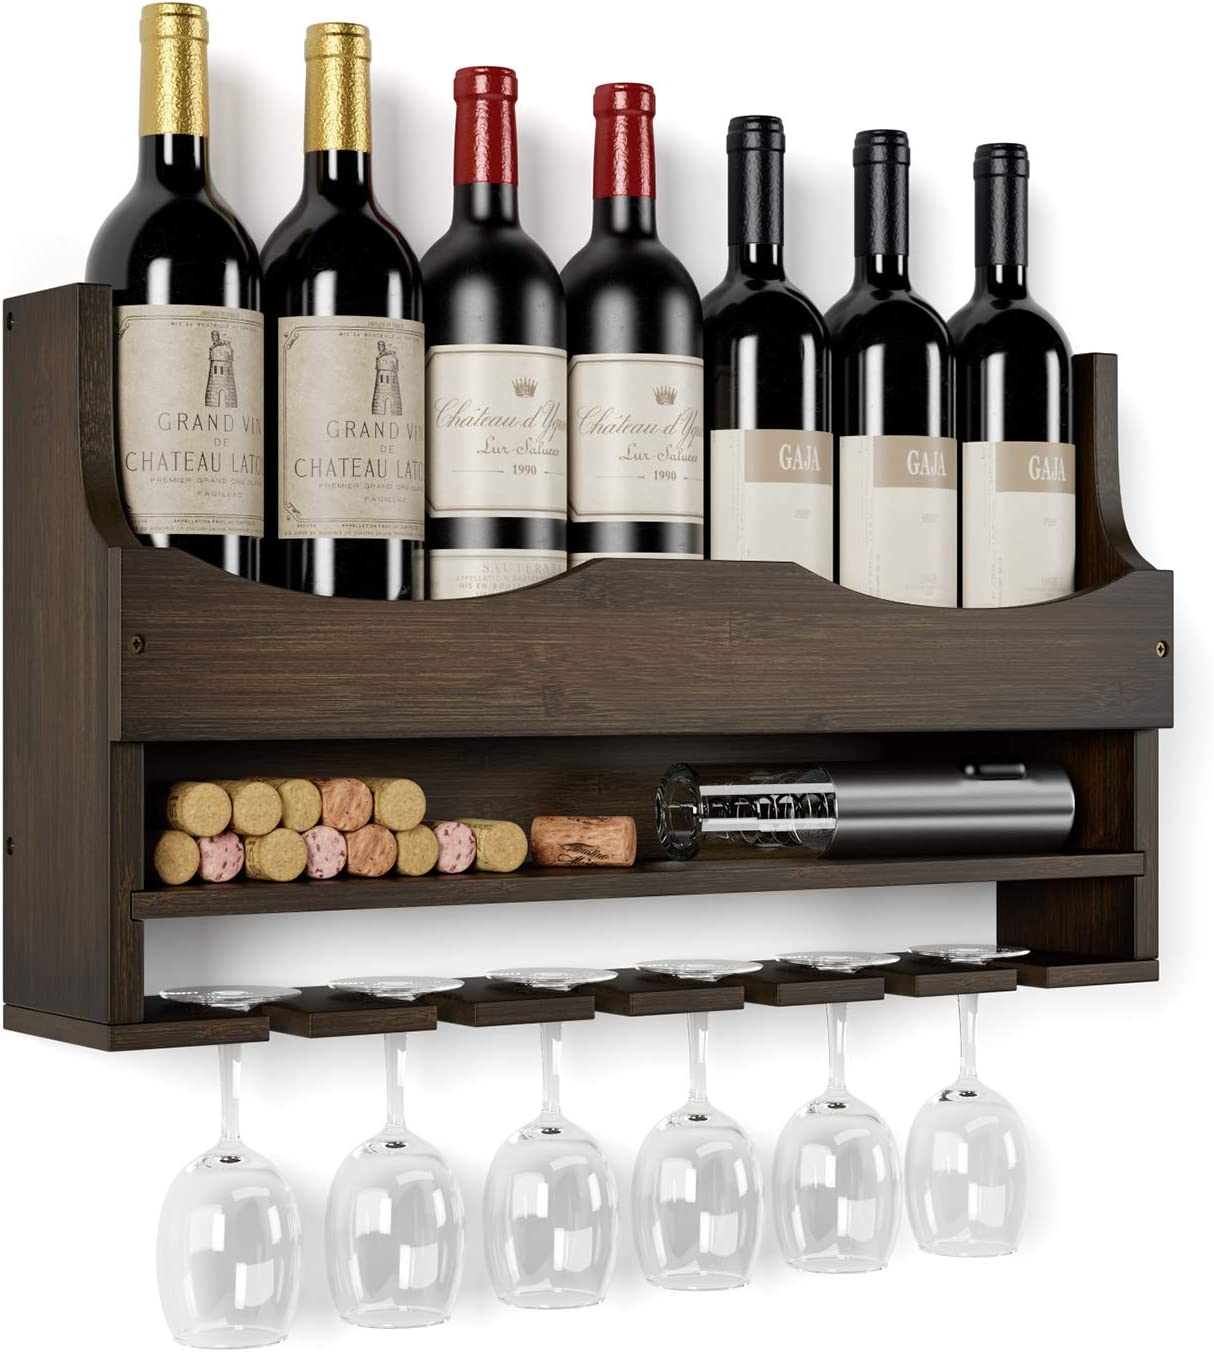 HOMECHO Wall Mounted Wine Rack Bamboo Wine Bottles Holder with Hanging Stemware Glasses Set and Wine Cork Storage, Home Kitchen Decor, Espresso